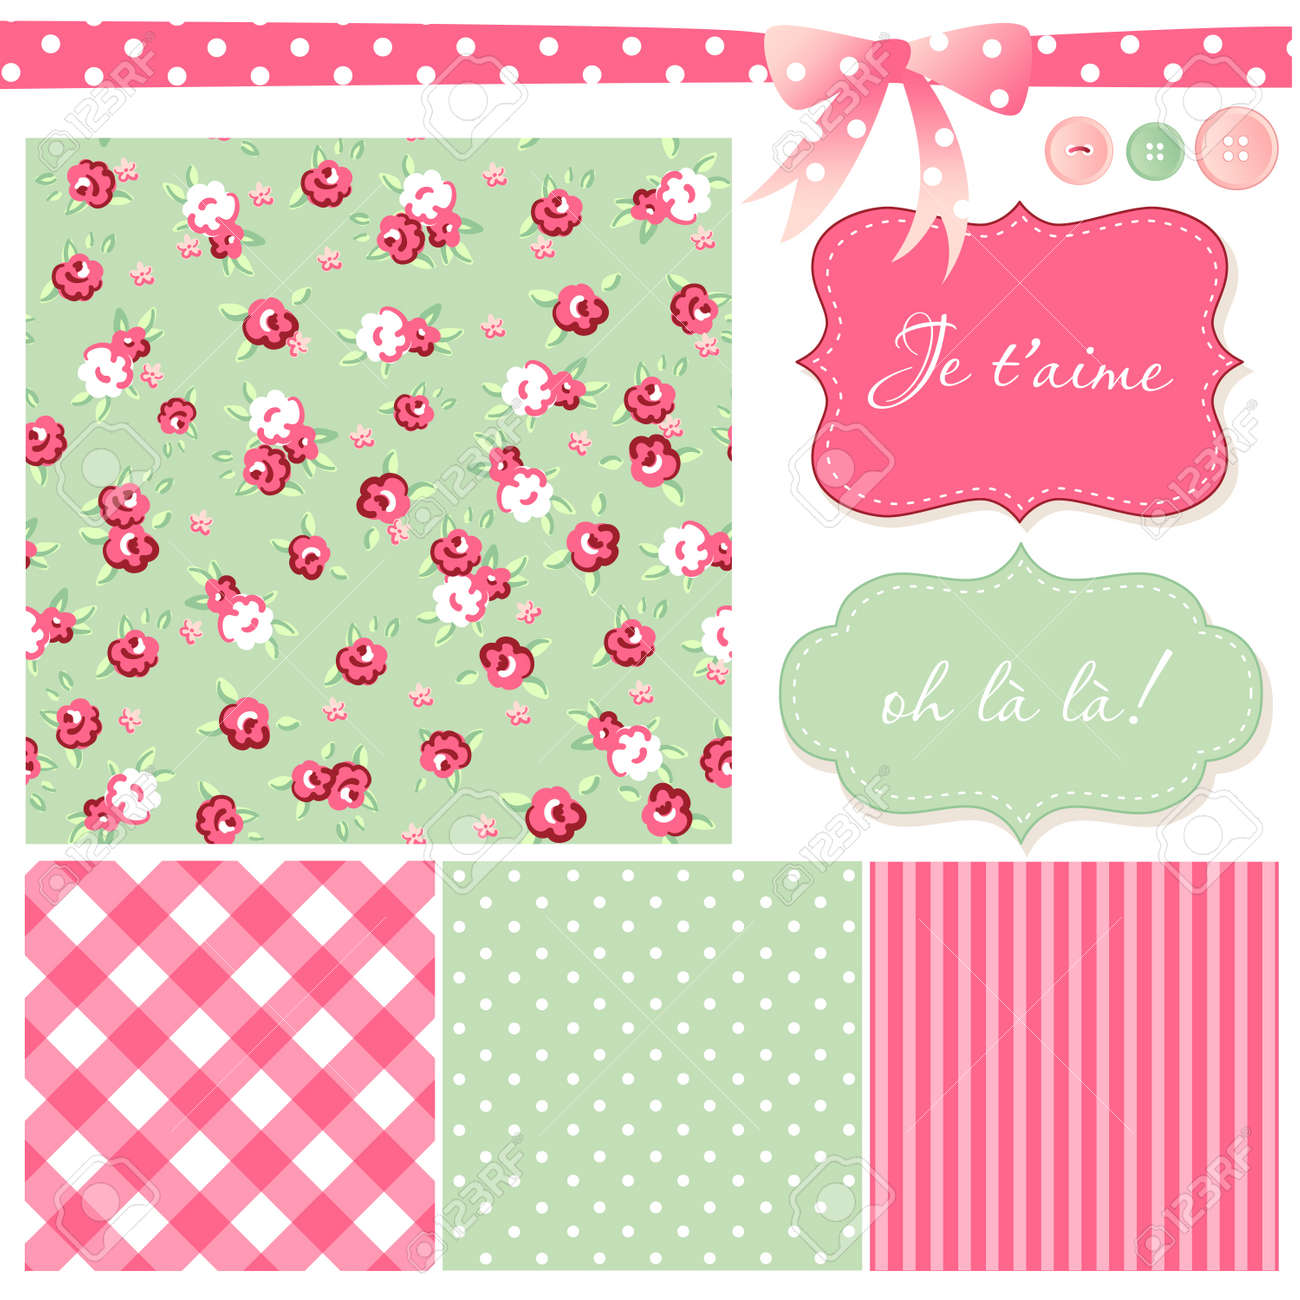 Cute Scrapbook Paper Patterns Vintage Rose Pattern  frames